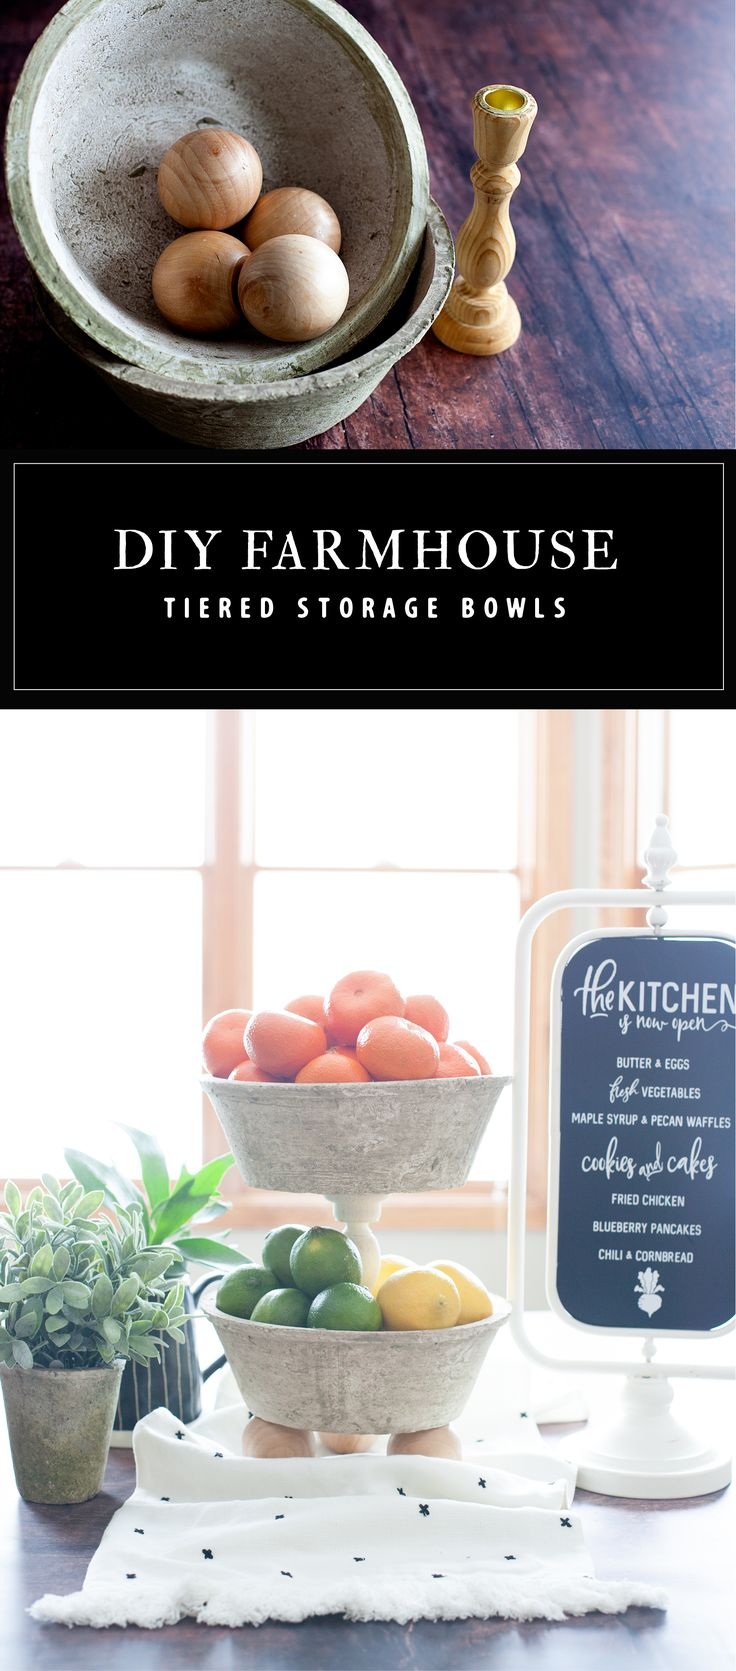 DIY Farmhouse Tiered Bowls are easy as pie to make thanks to @michaels. Normally a costly buy, these tiered bowls won't break the bank and they are super easy to make. A great storage option for either the kitchen or the office! Come on over to WhipperBerry to learn how to make one for your home.